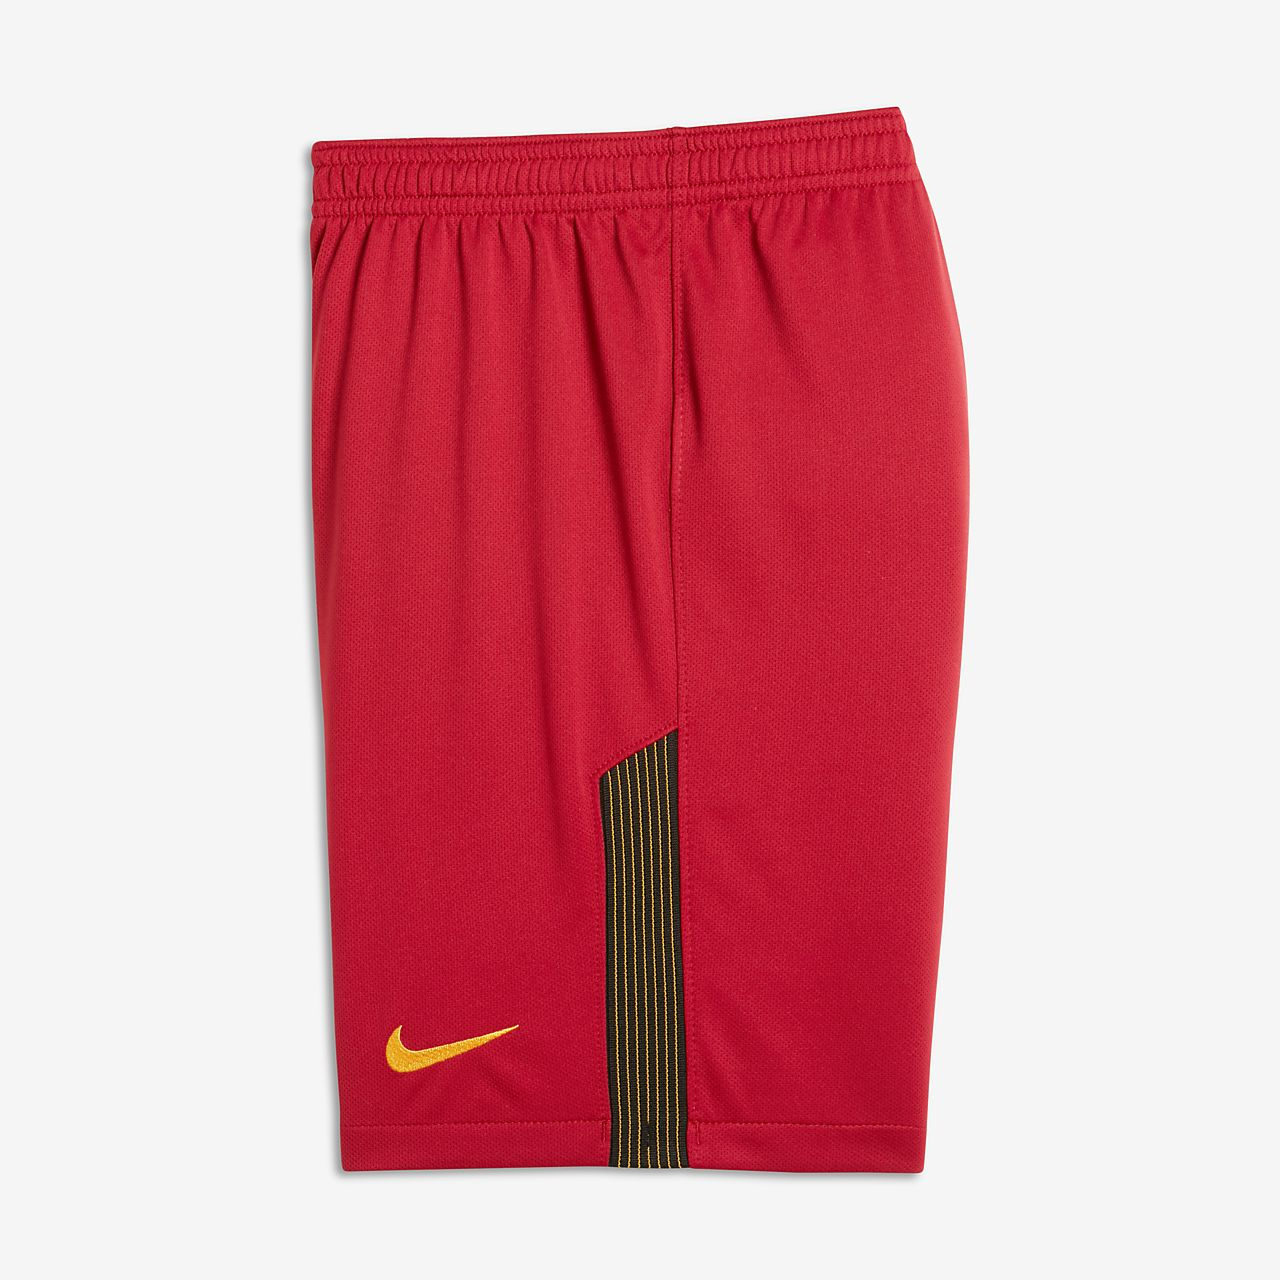 more photos a02df 41049 Older Kids Football Shorts. 201718 A.S. Roma Stadium HomeAway